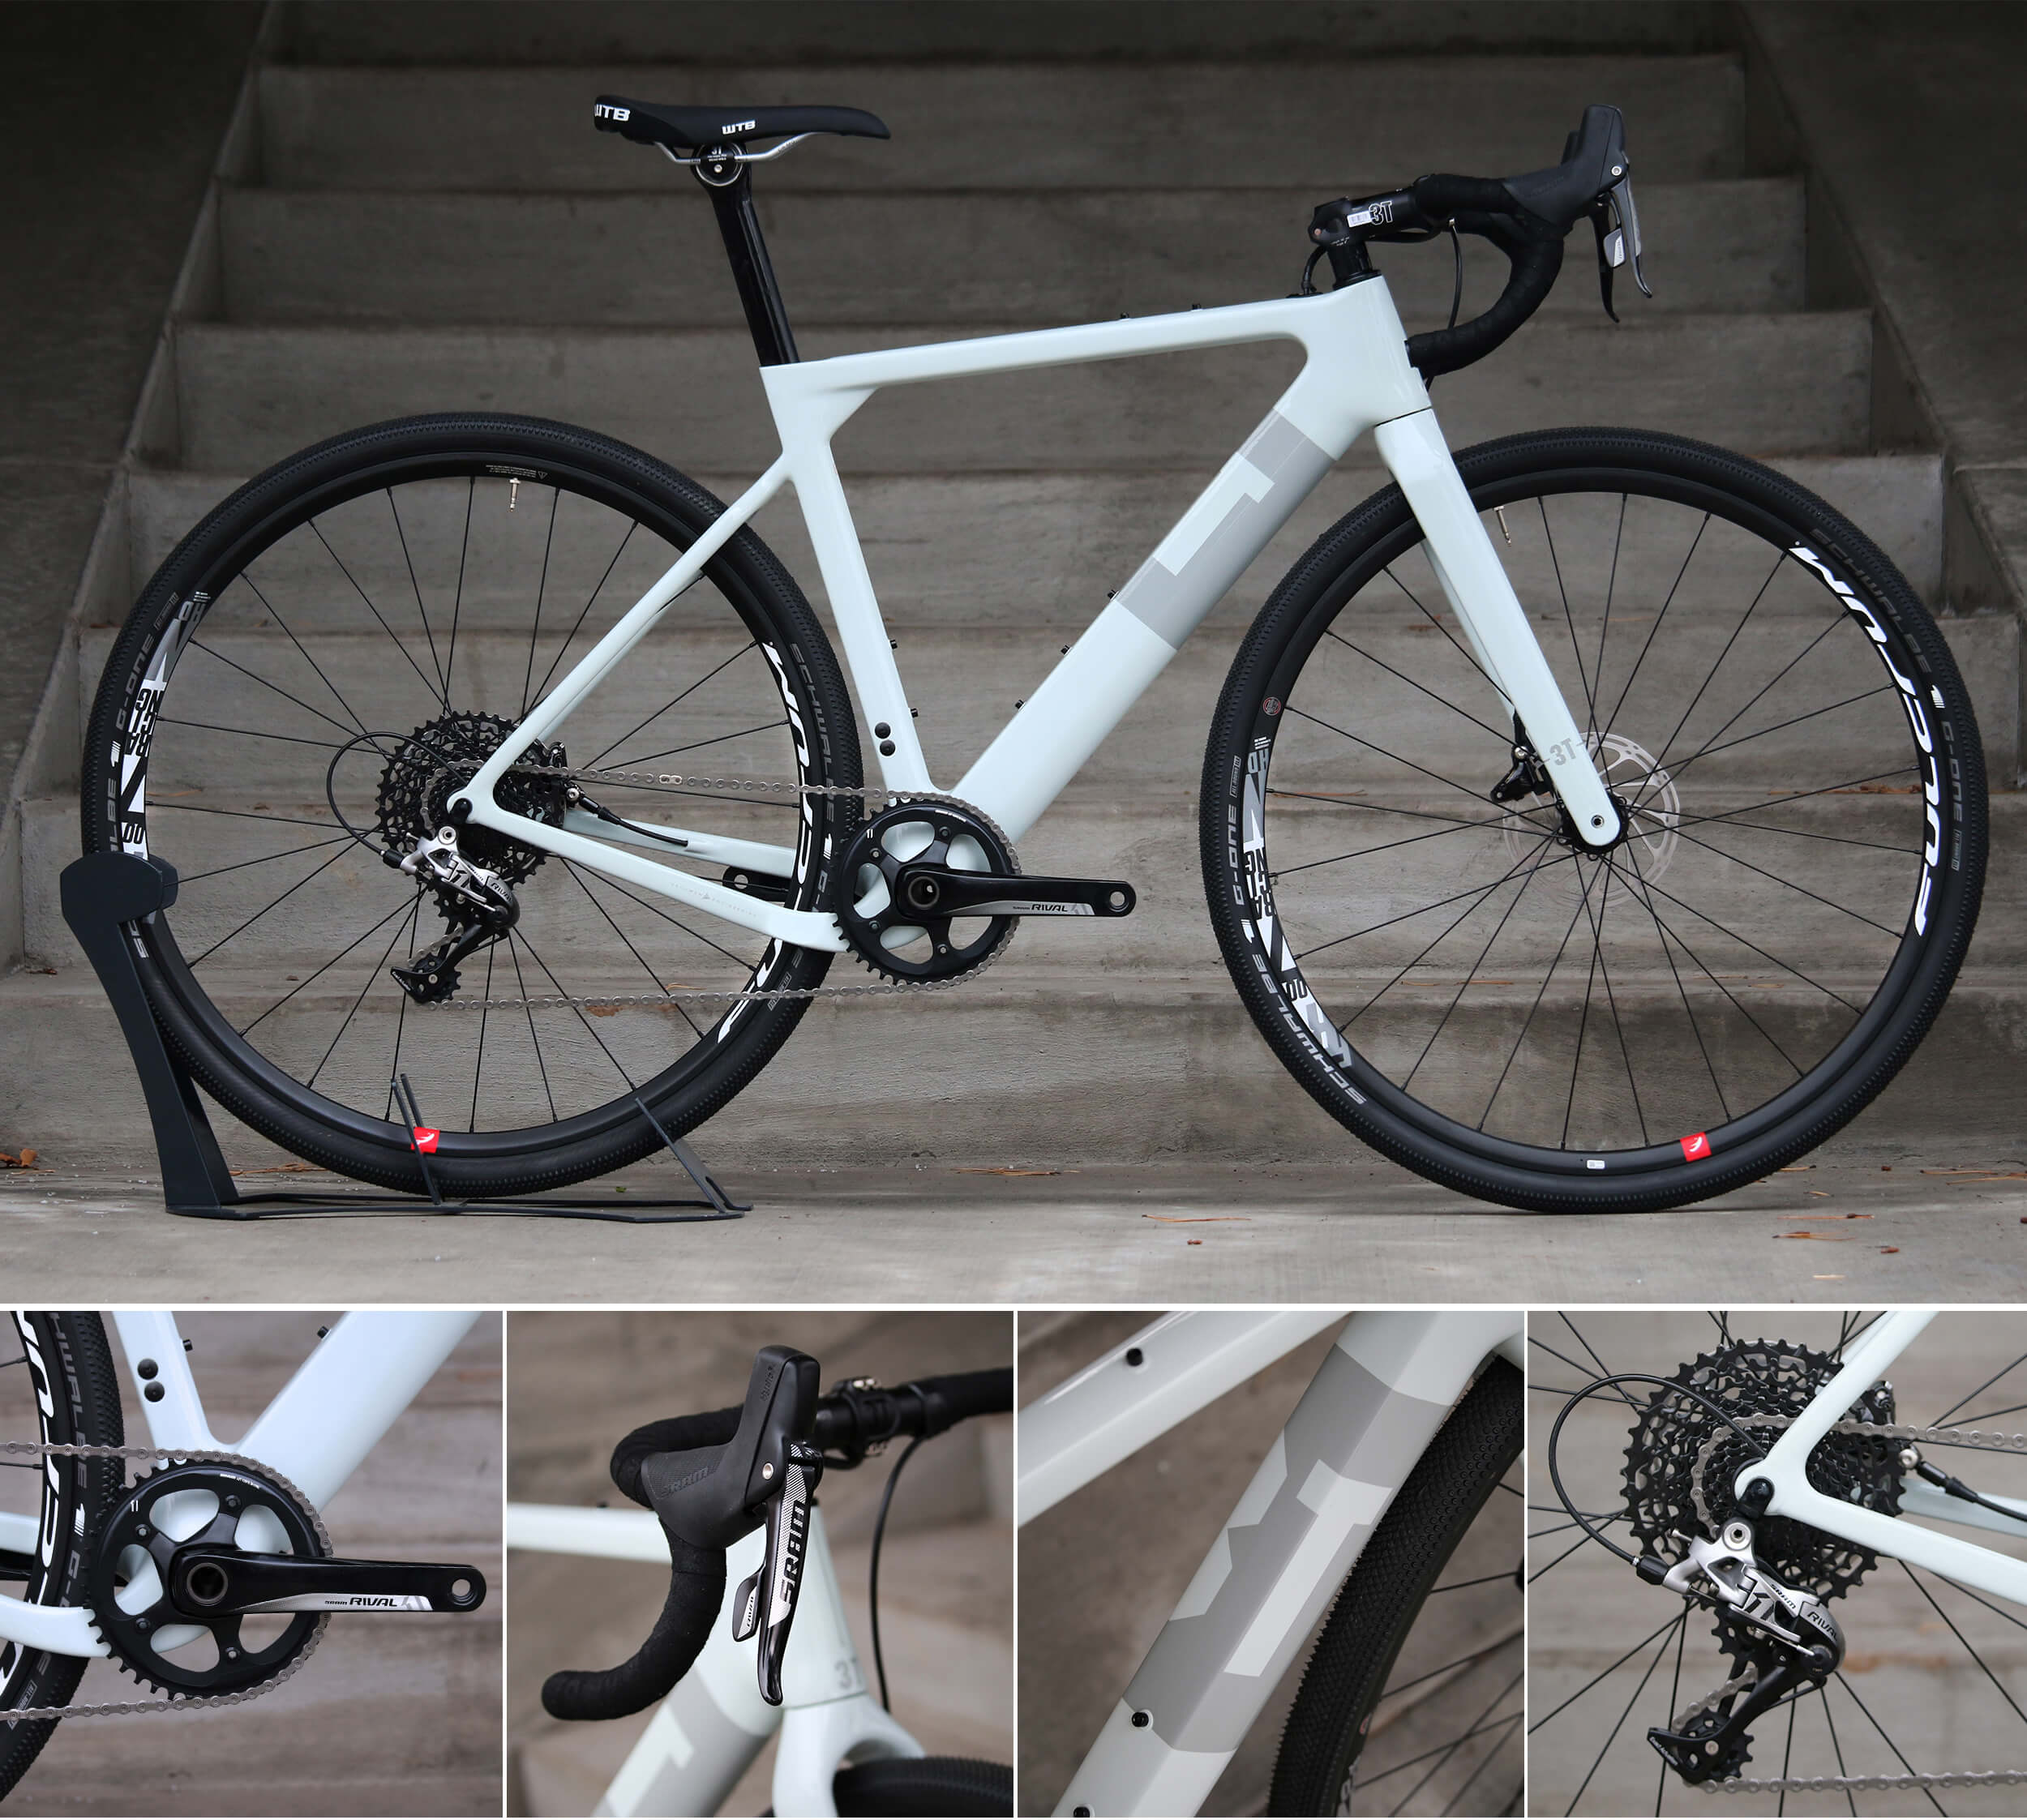 3T Exploro Rival Contender Bicycles